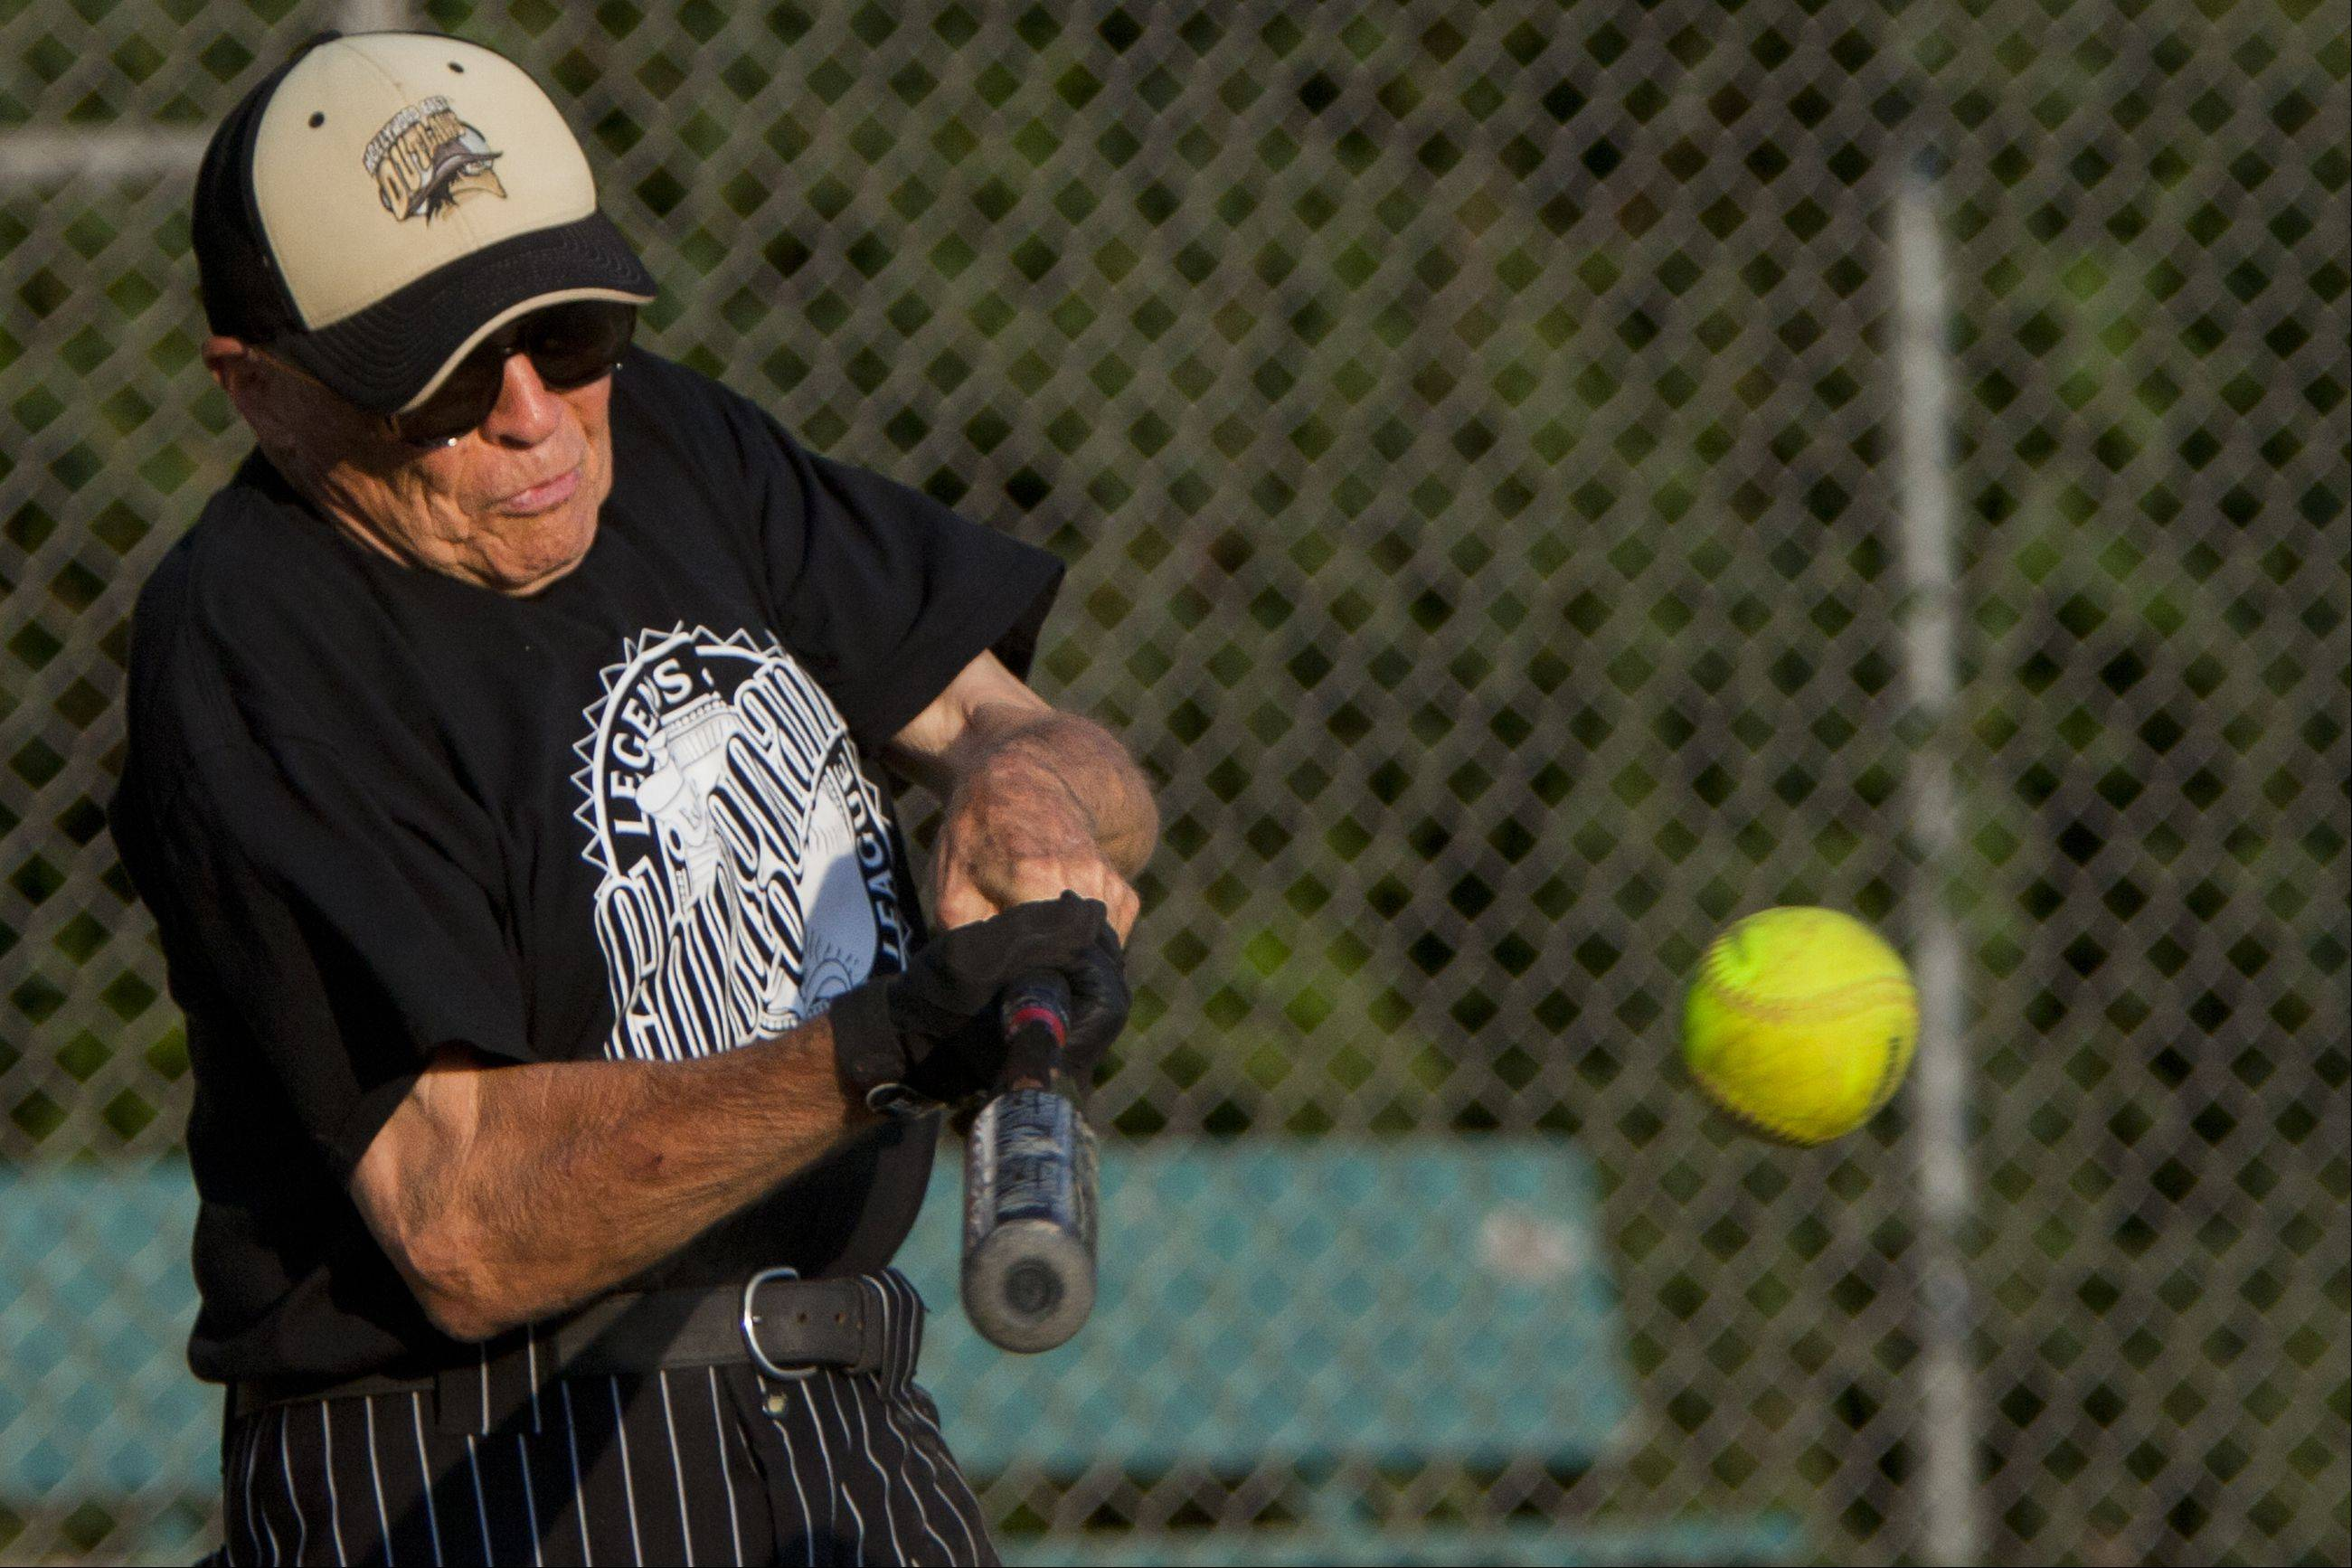 82-year-old Ken Black the oldest member of the Chicagoland Legends Softball League hits a line-drive back to pitcher.